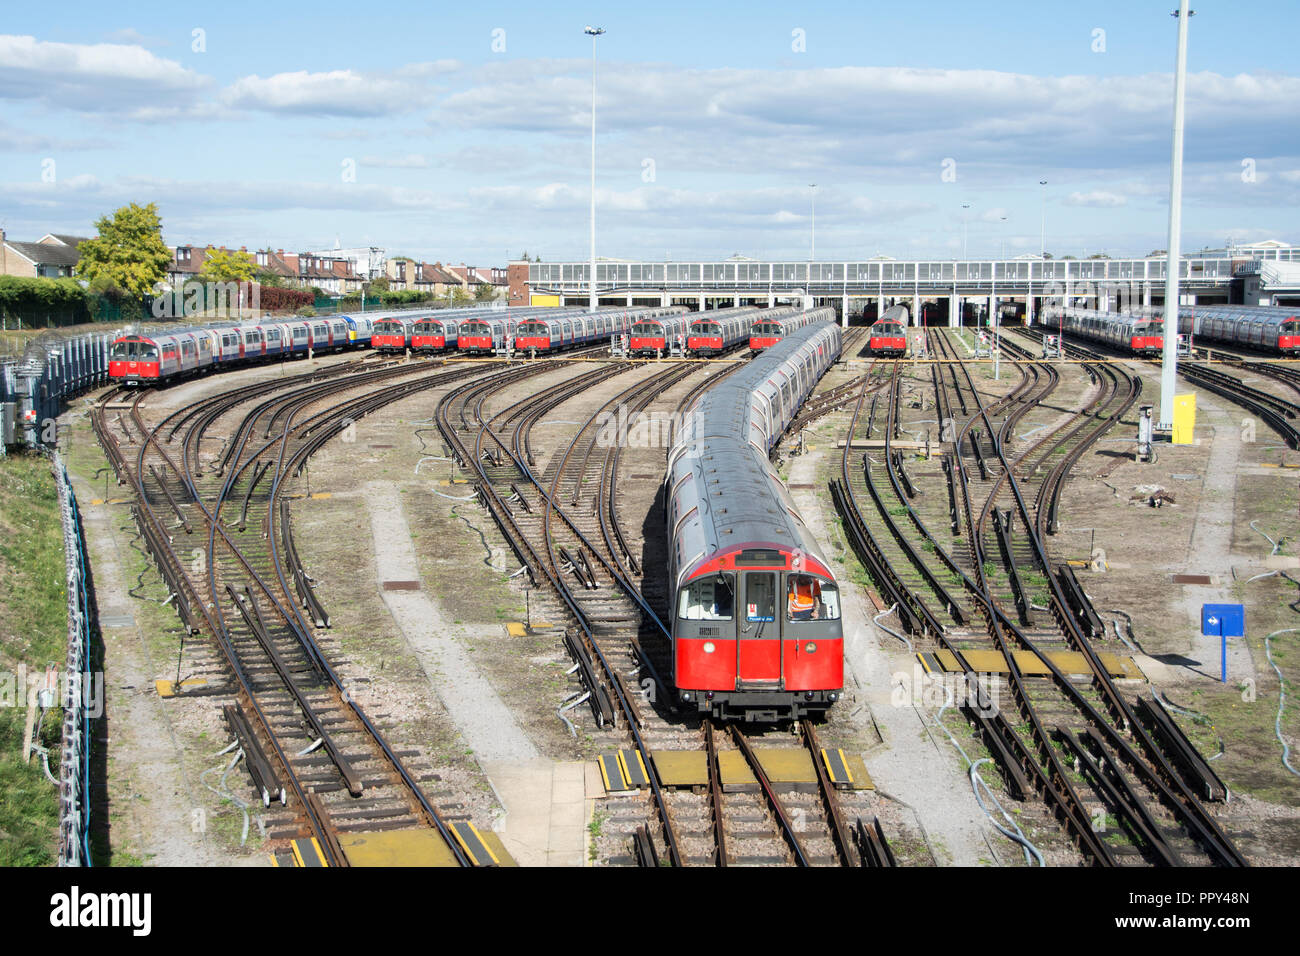 London, England, UK. 28 September, 2018.  Out of service Piccadilly Line underground trains at Boston Manor depot due to strike action by the RMT. Strike action and the 48-hour walkout is due to end today. © Jansos/ Alamy Live News. - Stock Image